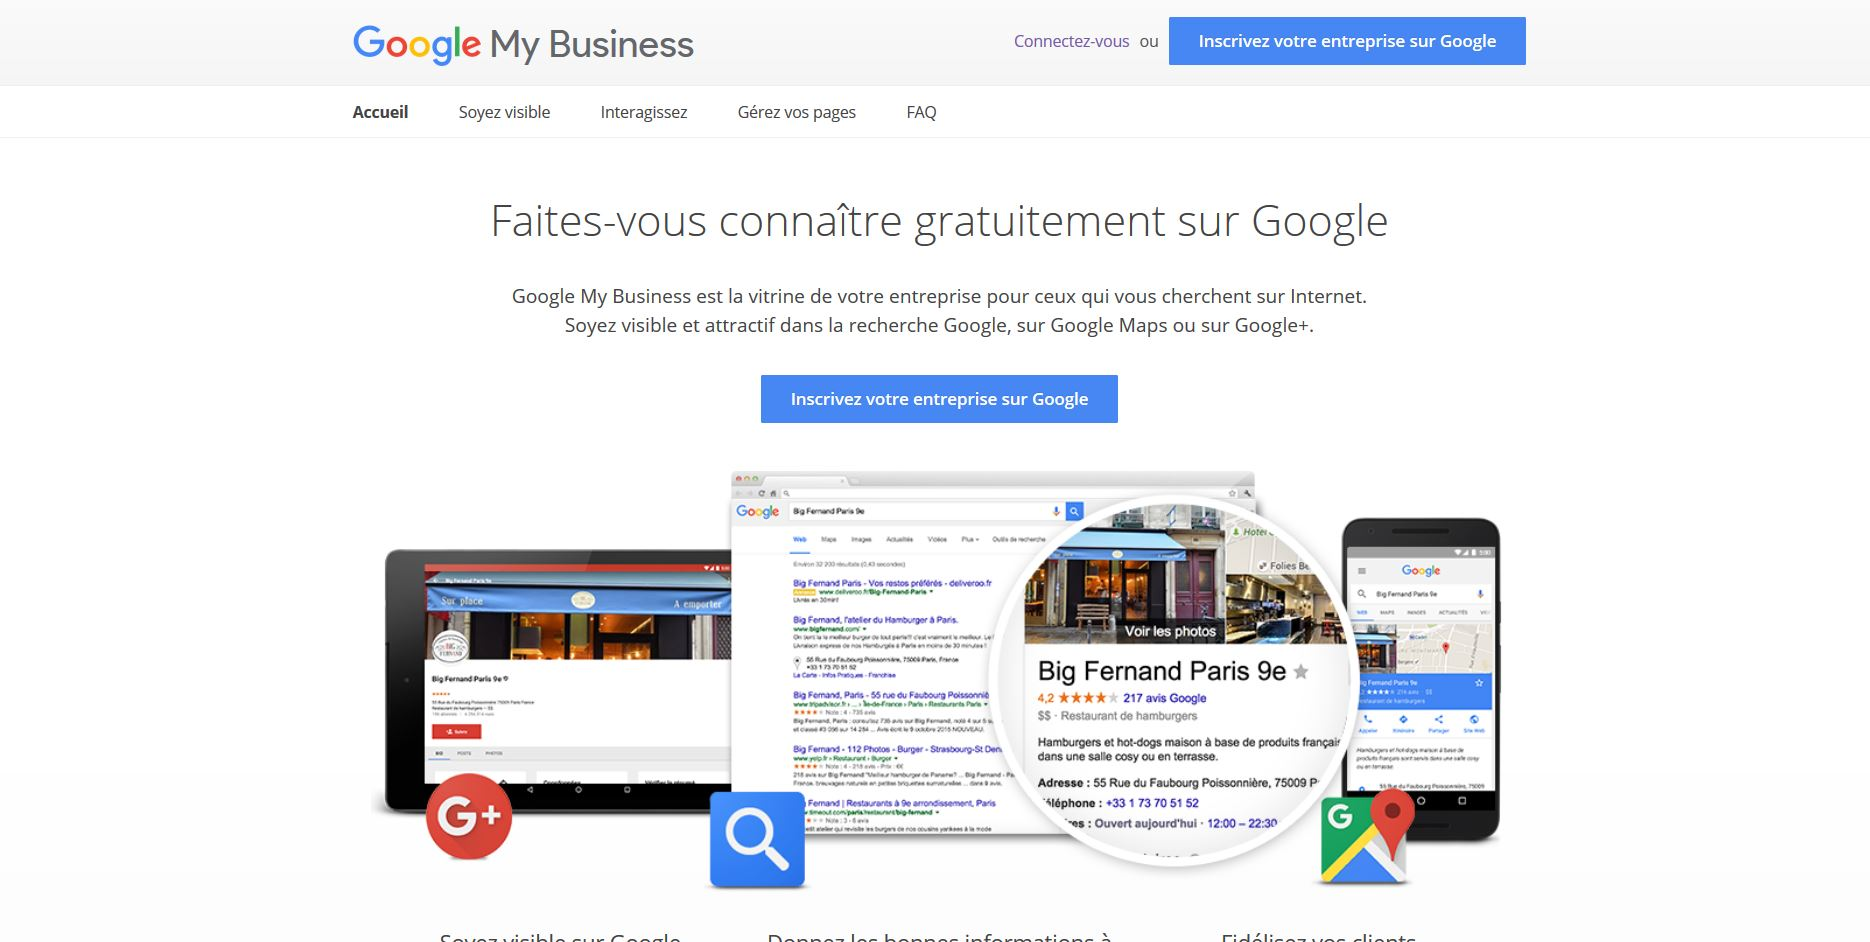 google my business pour référencement local de site internet sur maiens douai lens arras paris valenciennes lille reims